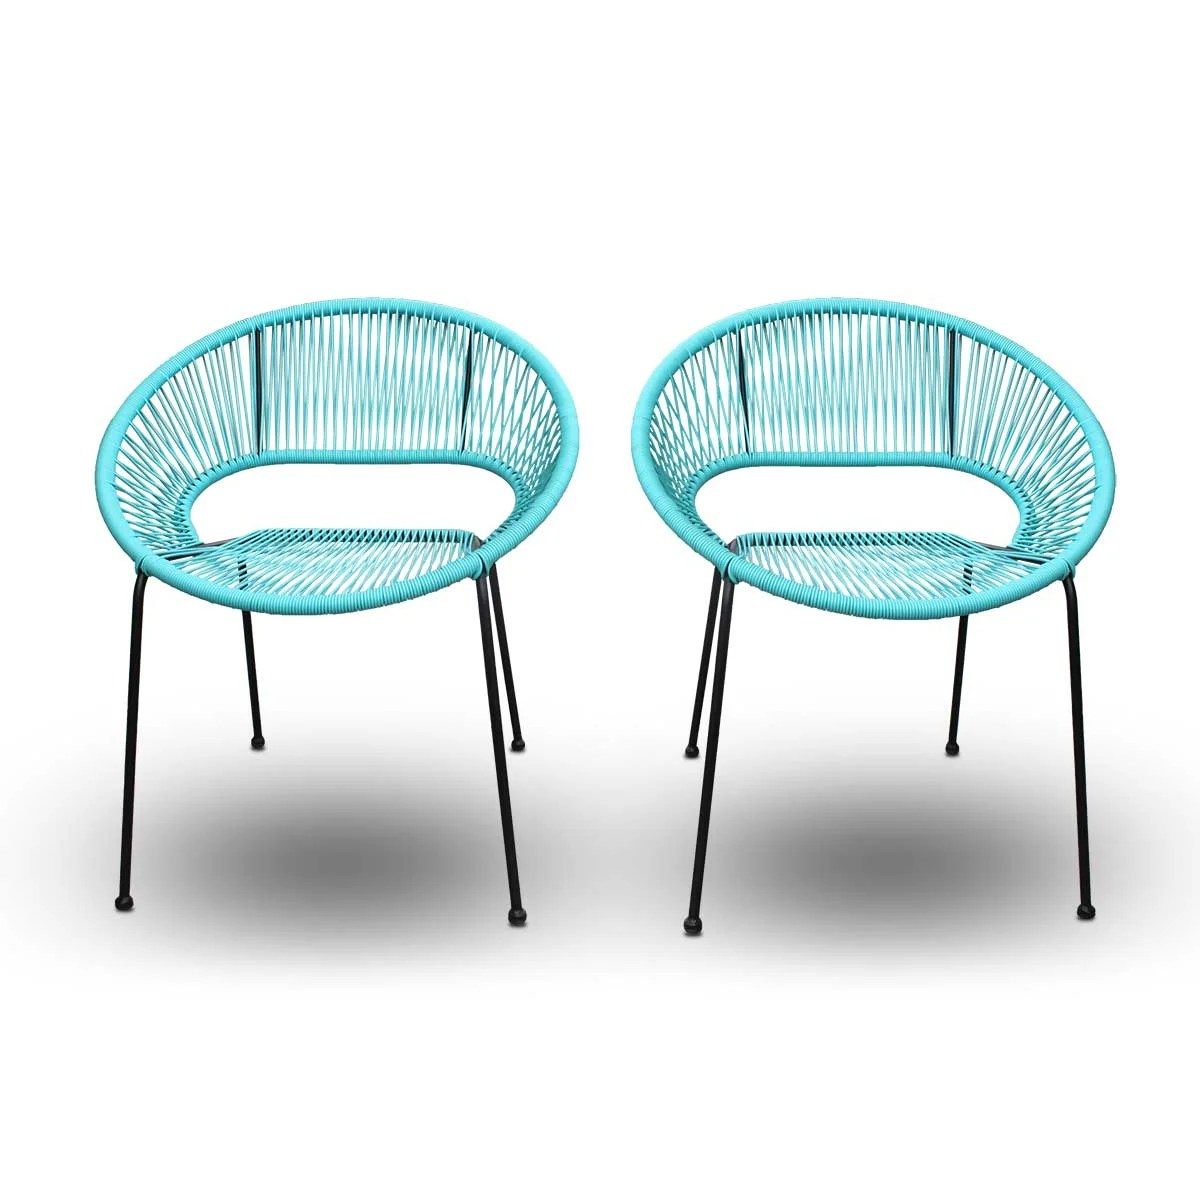 Acapulco Chair Target Acapulco Patio Chair Nouveau Design Pe Rotin Chaise